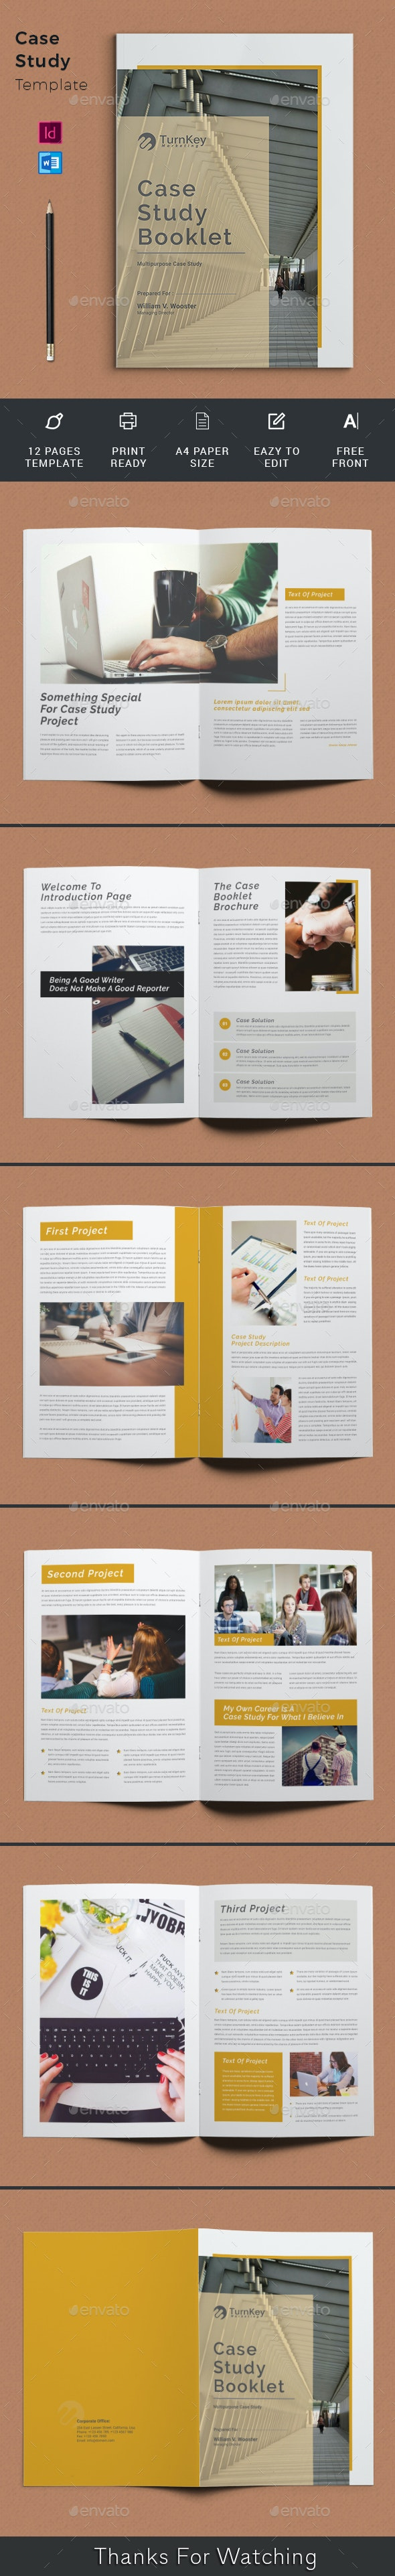 Case Study Booklet - Newsletters Print Templates